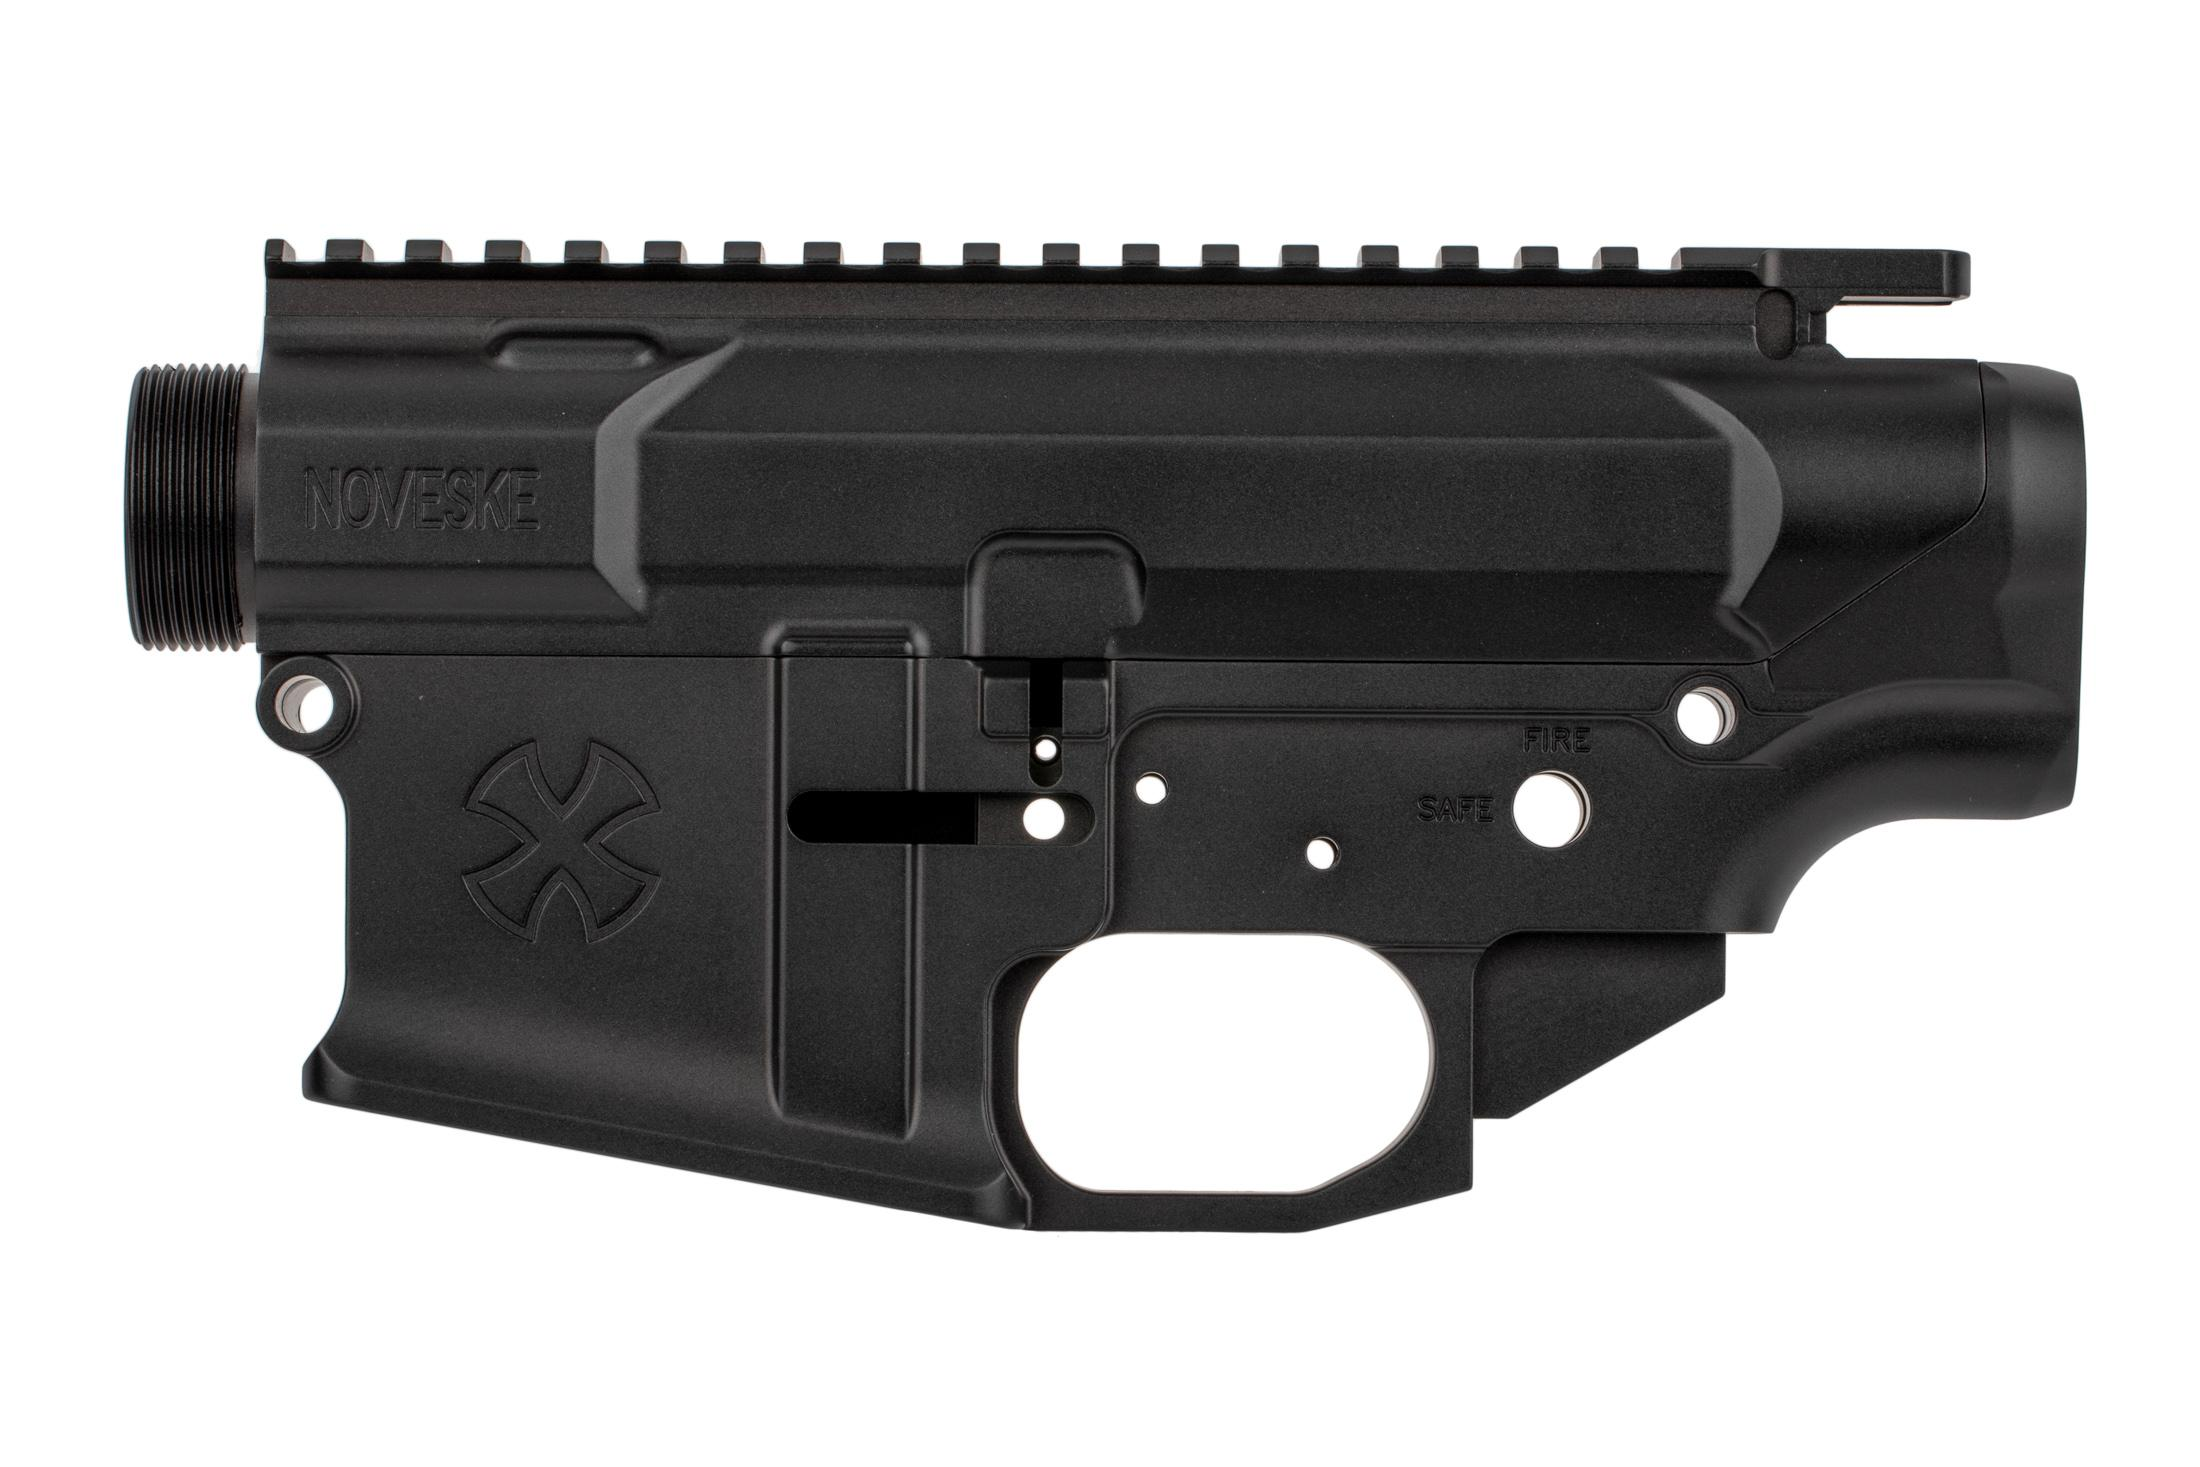 The Noveske N6 matched receiver assembly features an integral trigger guard